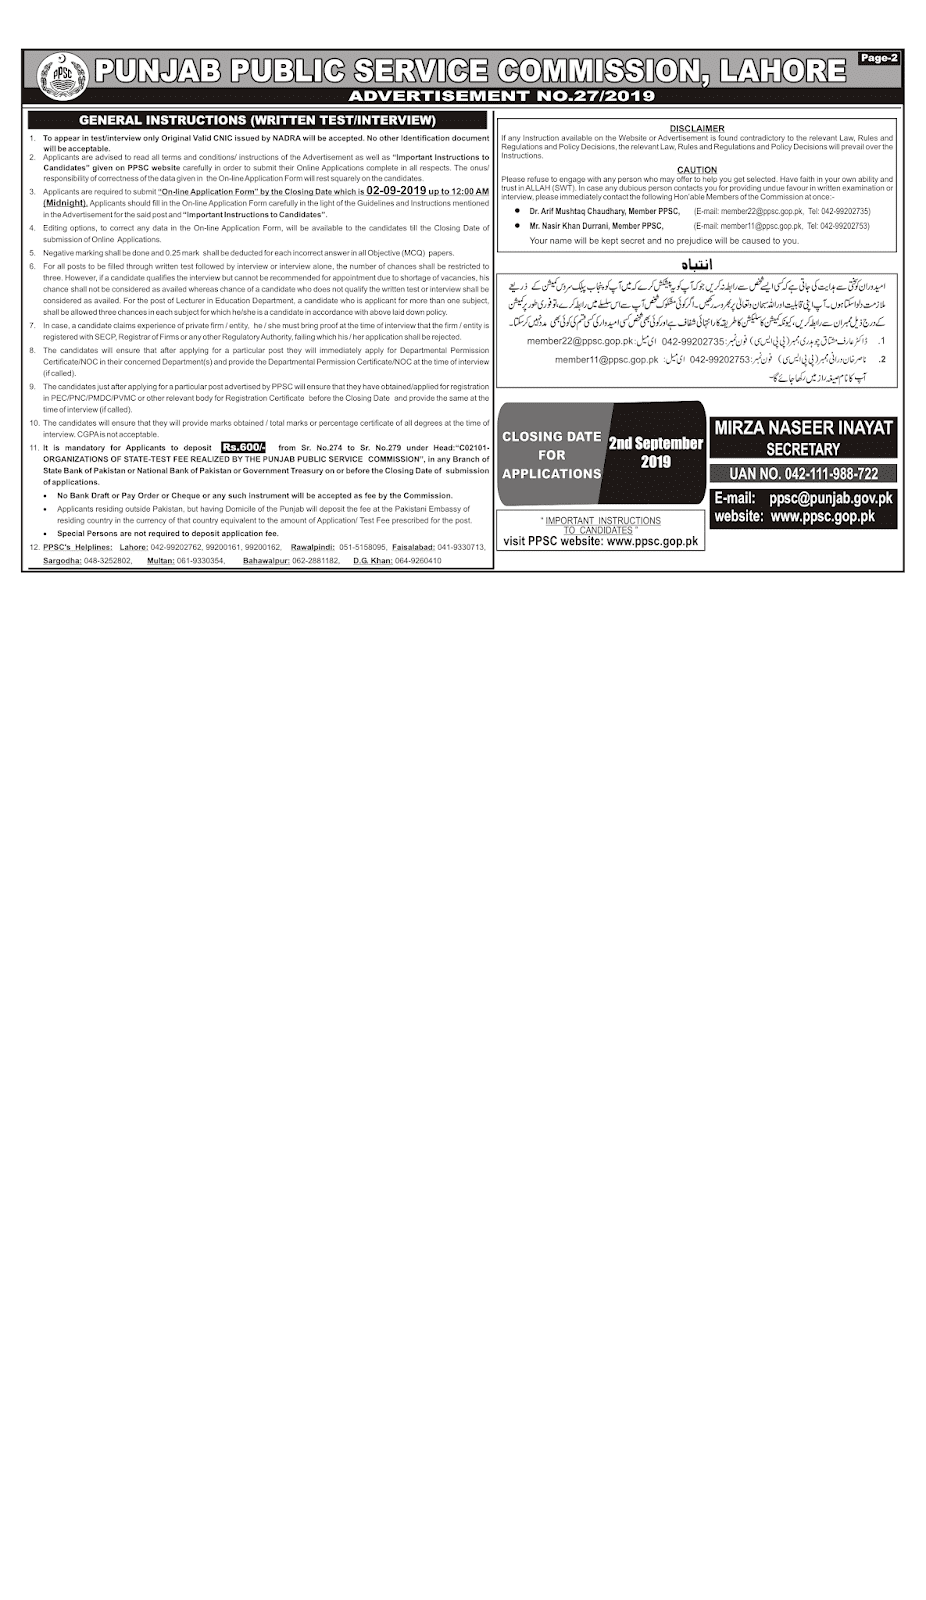 PPSC Advertisement 27/2019 Page Number 2/2